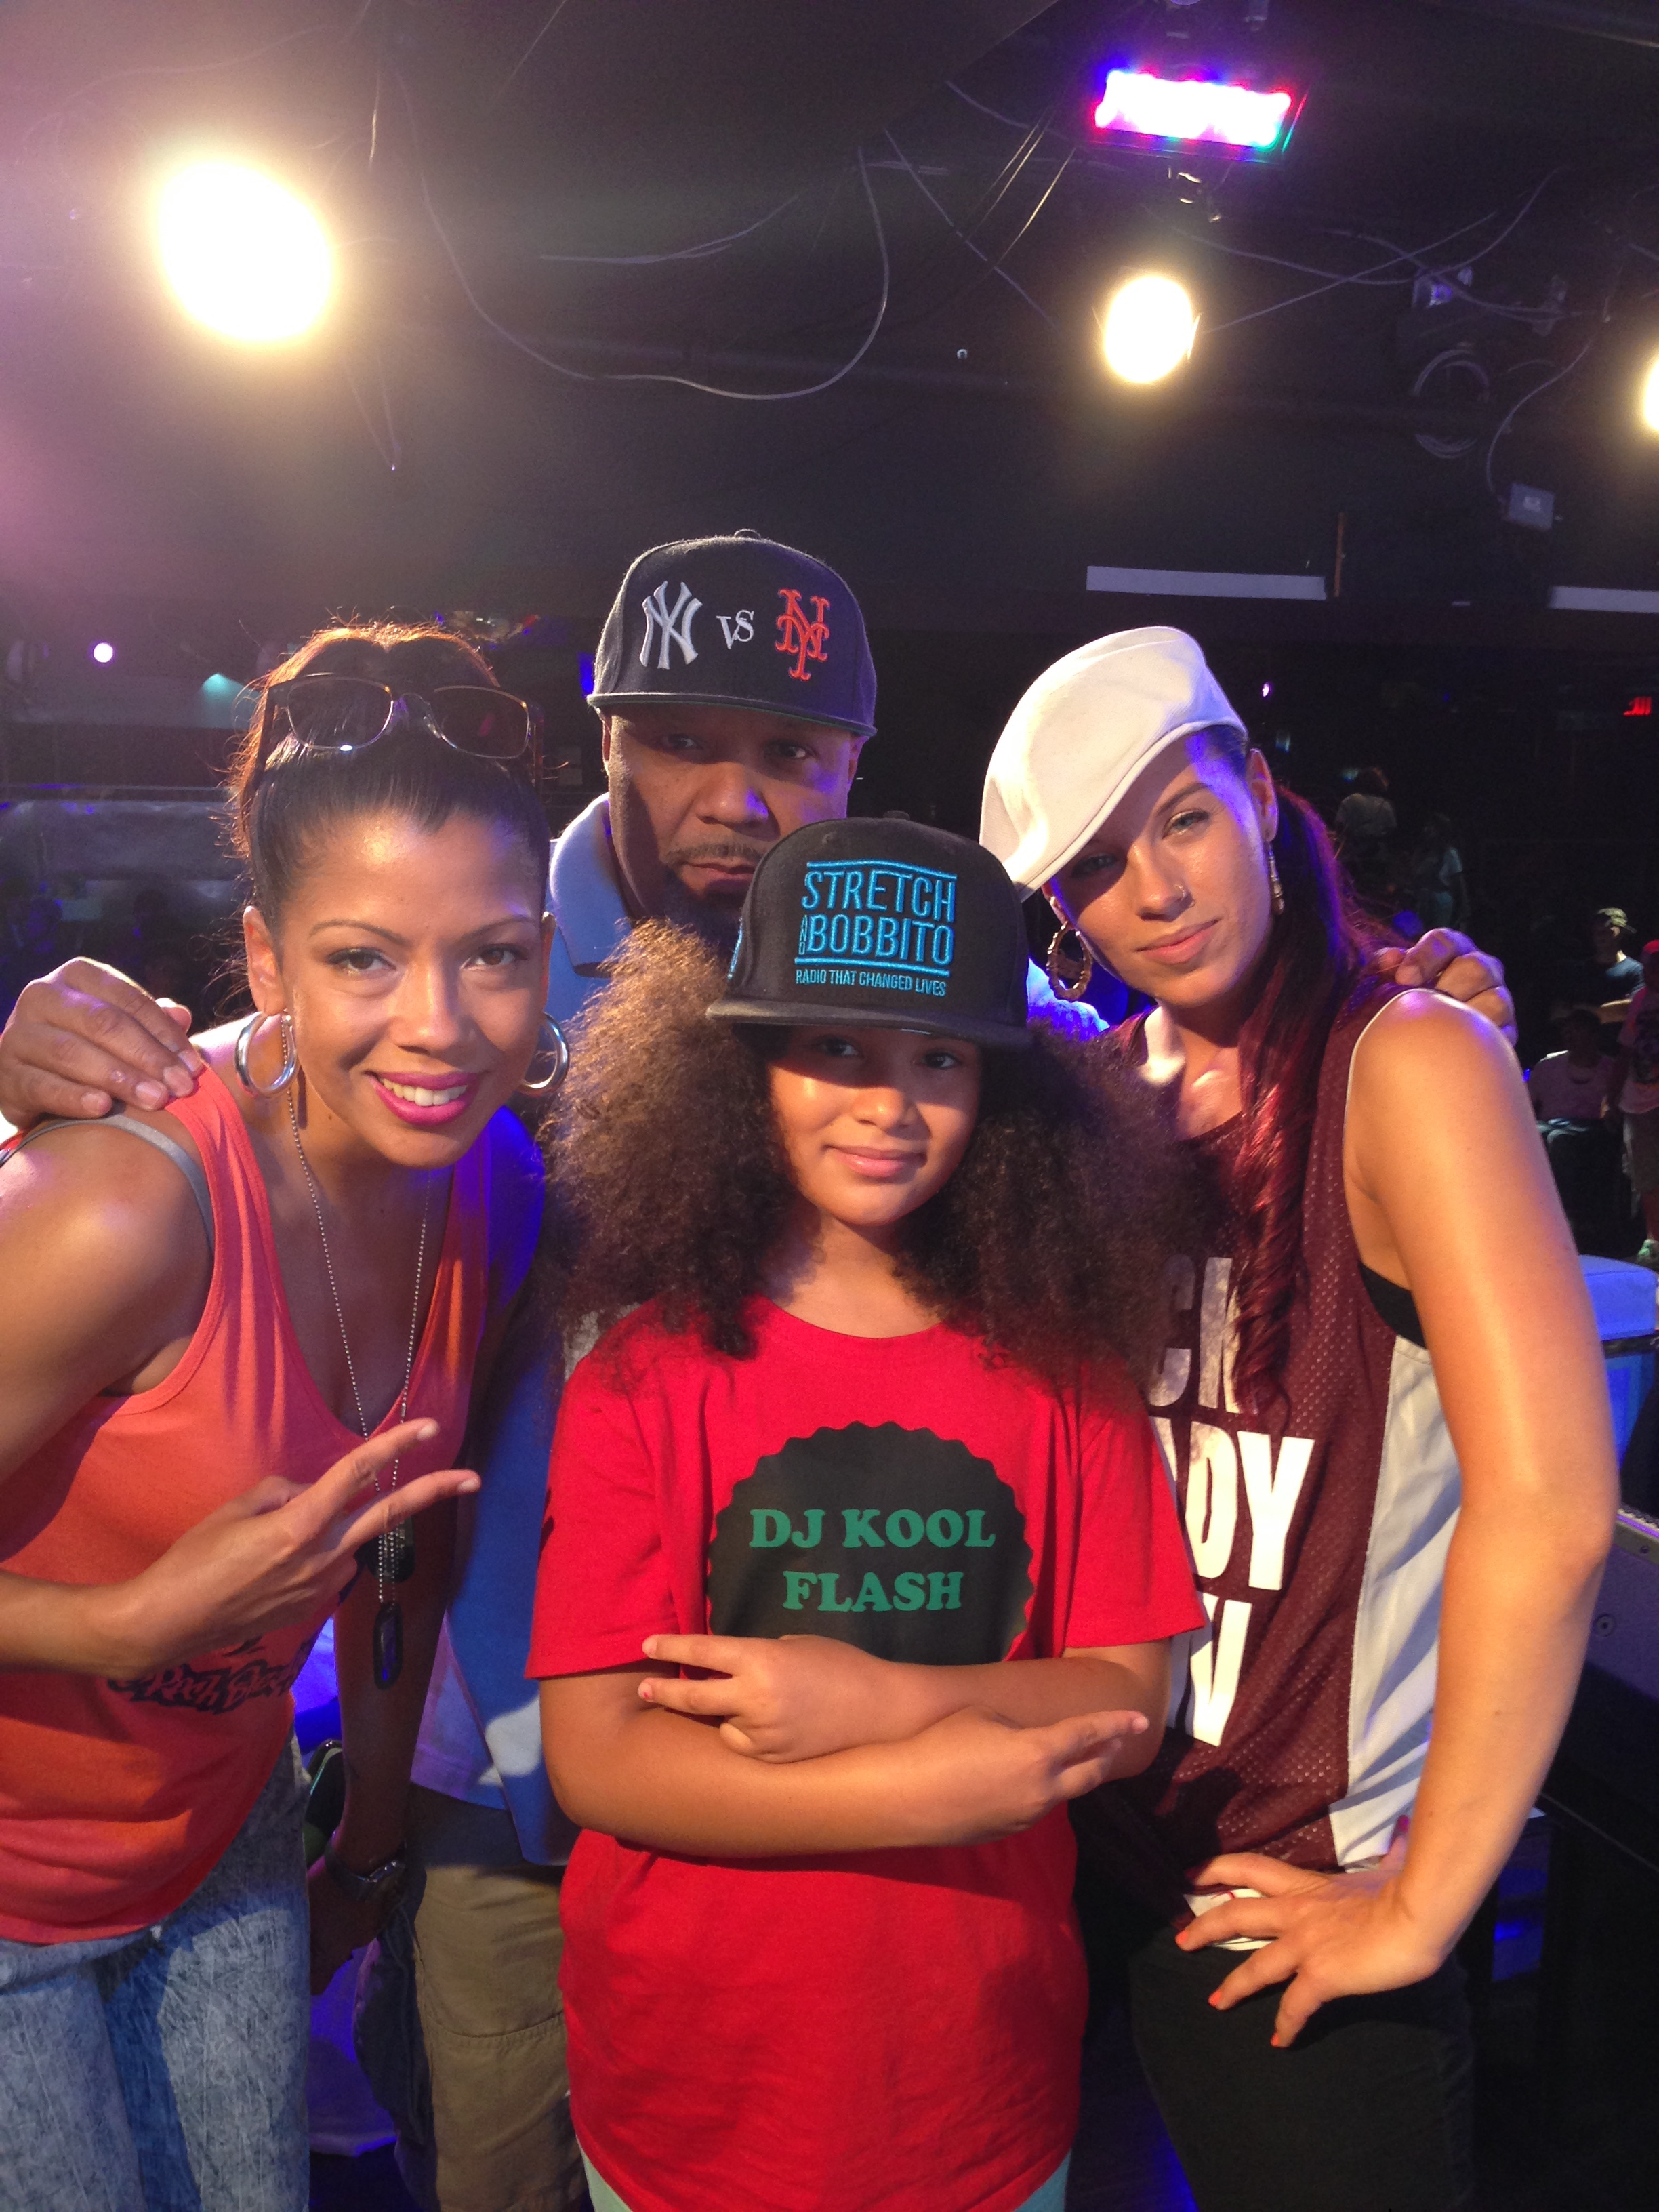 Kaotic Blaze(RSC), Break Beat Lou, Jazzy Jes(RSC) and Kool Flash 7:16 .jpg